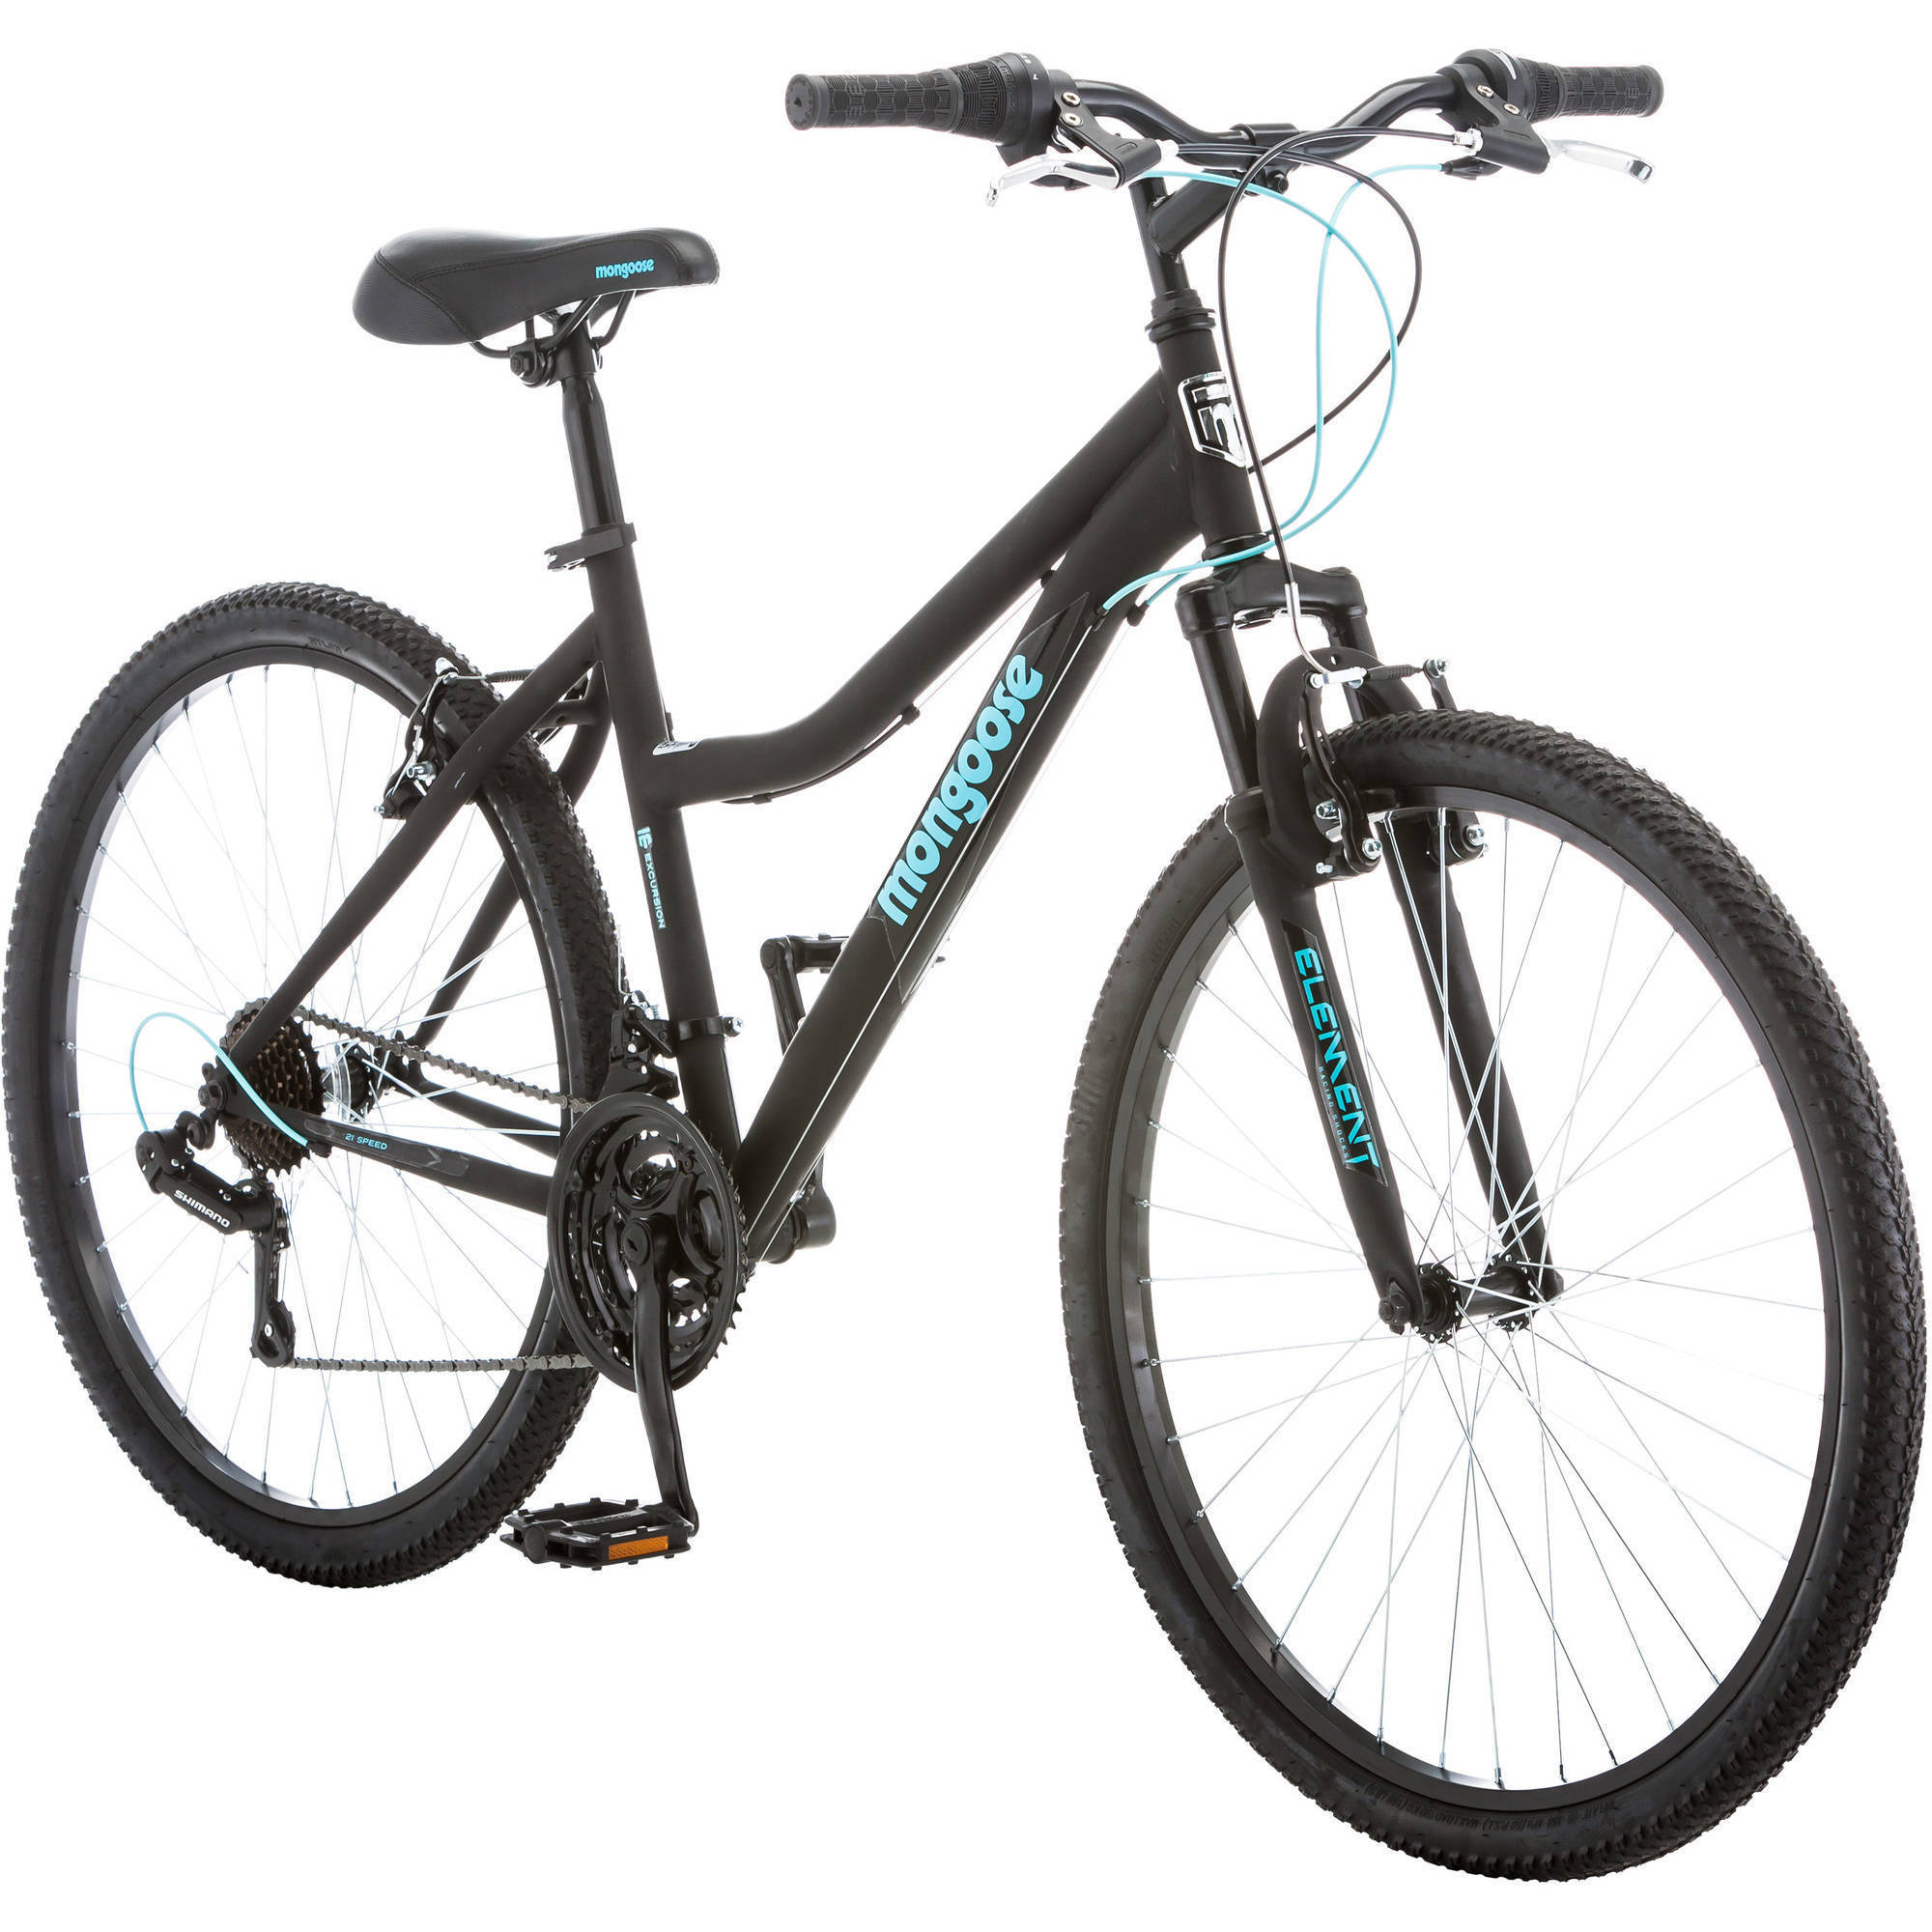 "26"" Mongoose Excursion Ladies Mountain Bike by Pacific Cycle"